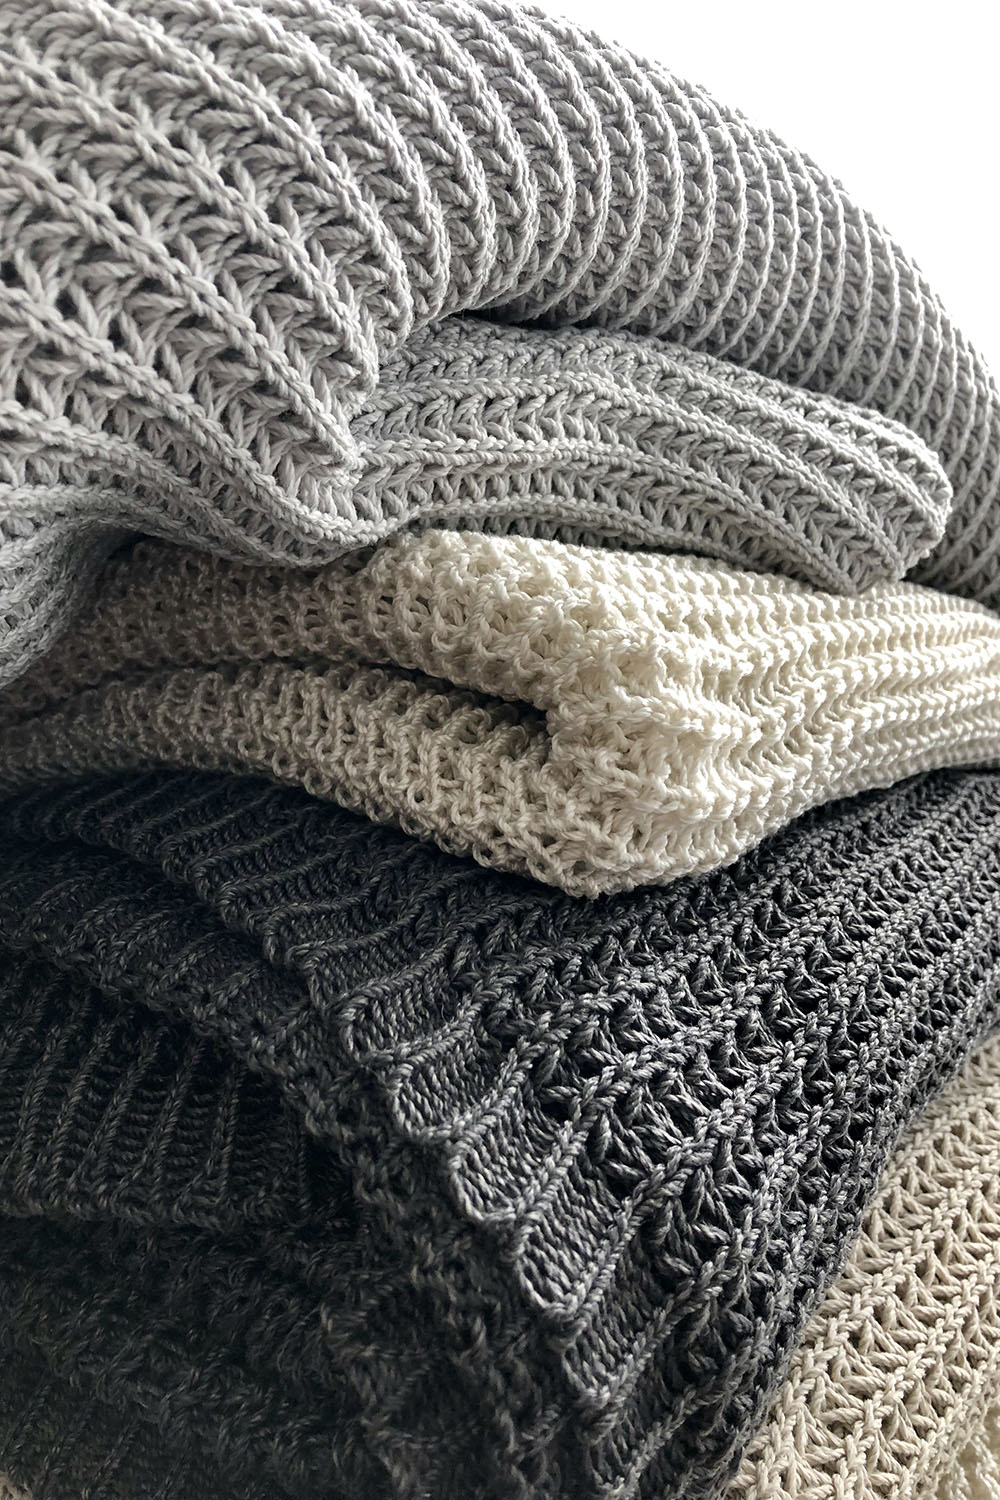 Garden throws_colour options pearl grey, natural white, graphite and light sand (from top to bottom)